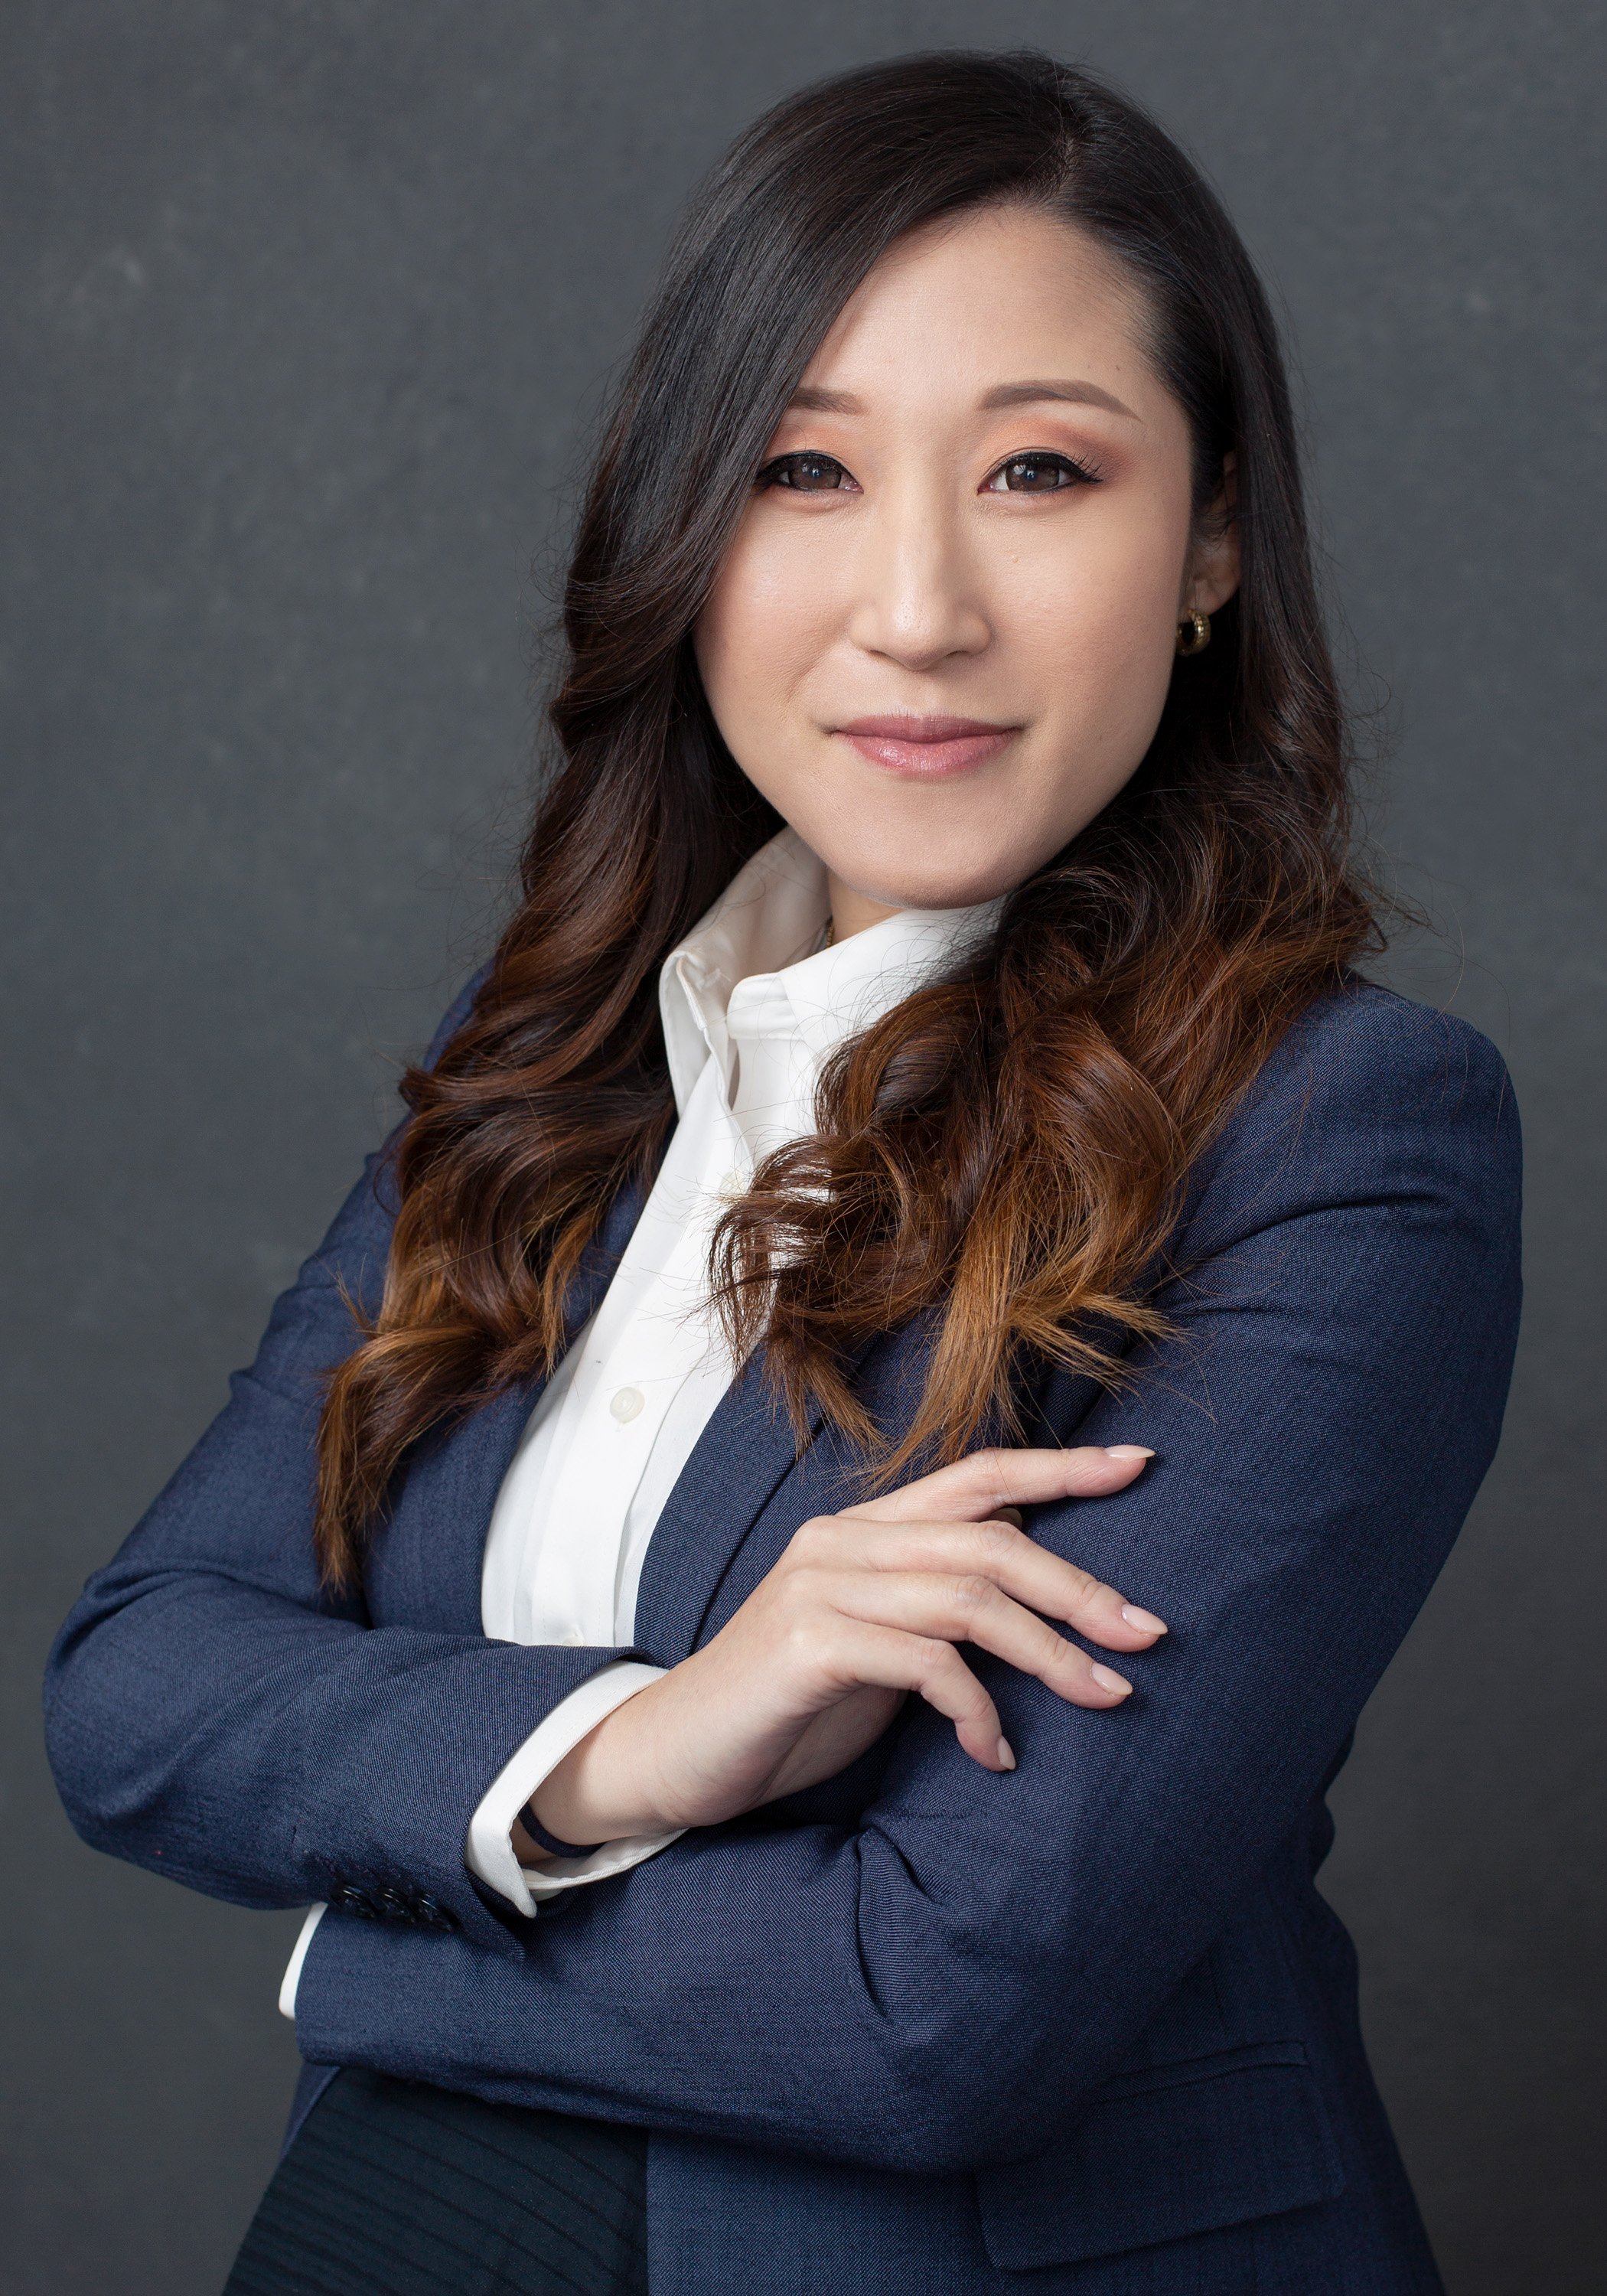 Personal Branding Portrait Corporate Headshot by Richmond Vancouver BC based photographer Sally Abde